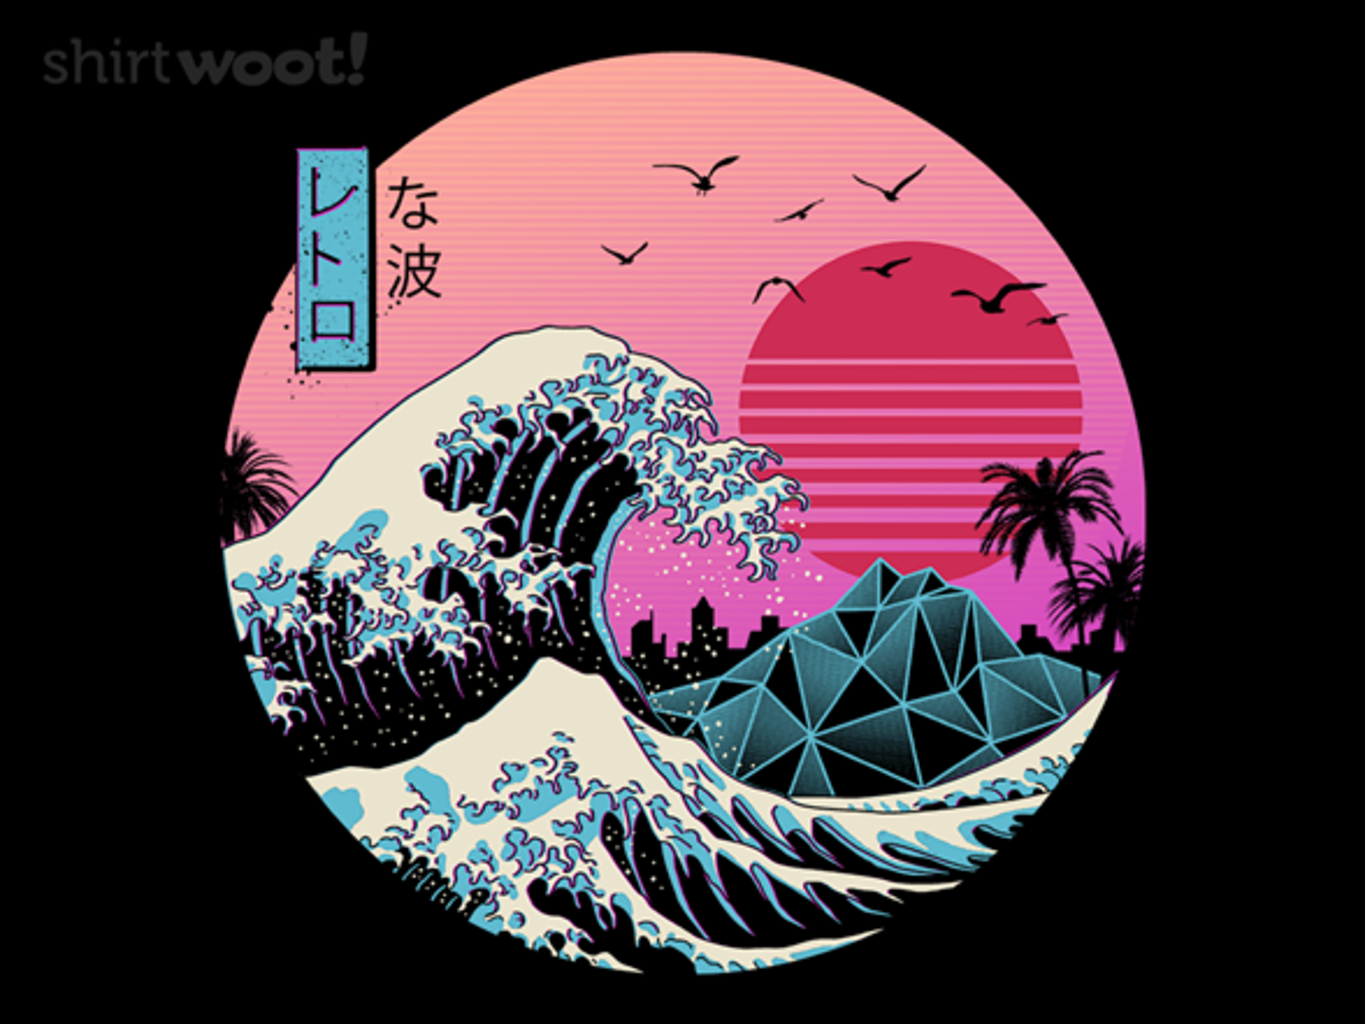 Woot!: The Great Retro Wave